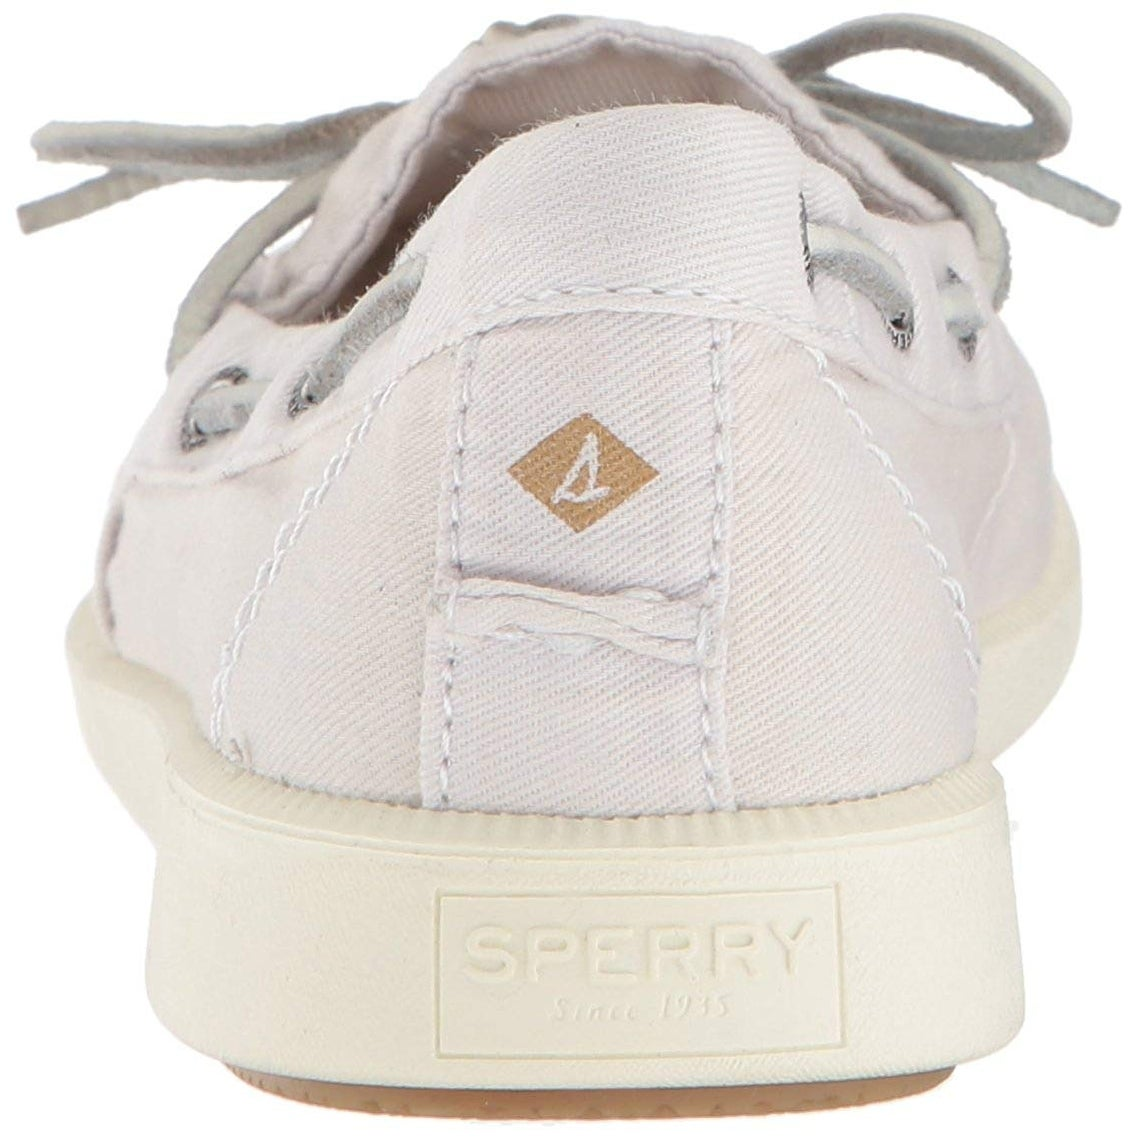 0515ee462b31 Shop Sperry Women's Oasis Canal Canvas Boat Shoe - Free Shipping On Orders  Over $45 - Overstock - 27657067